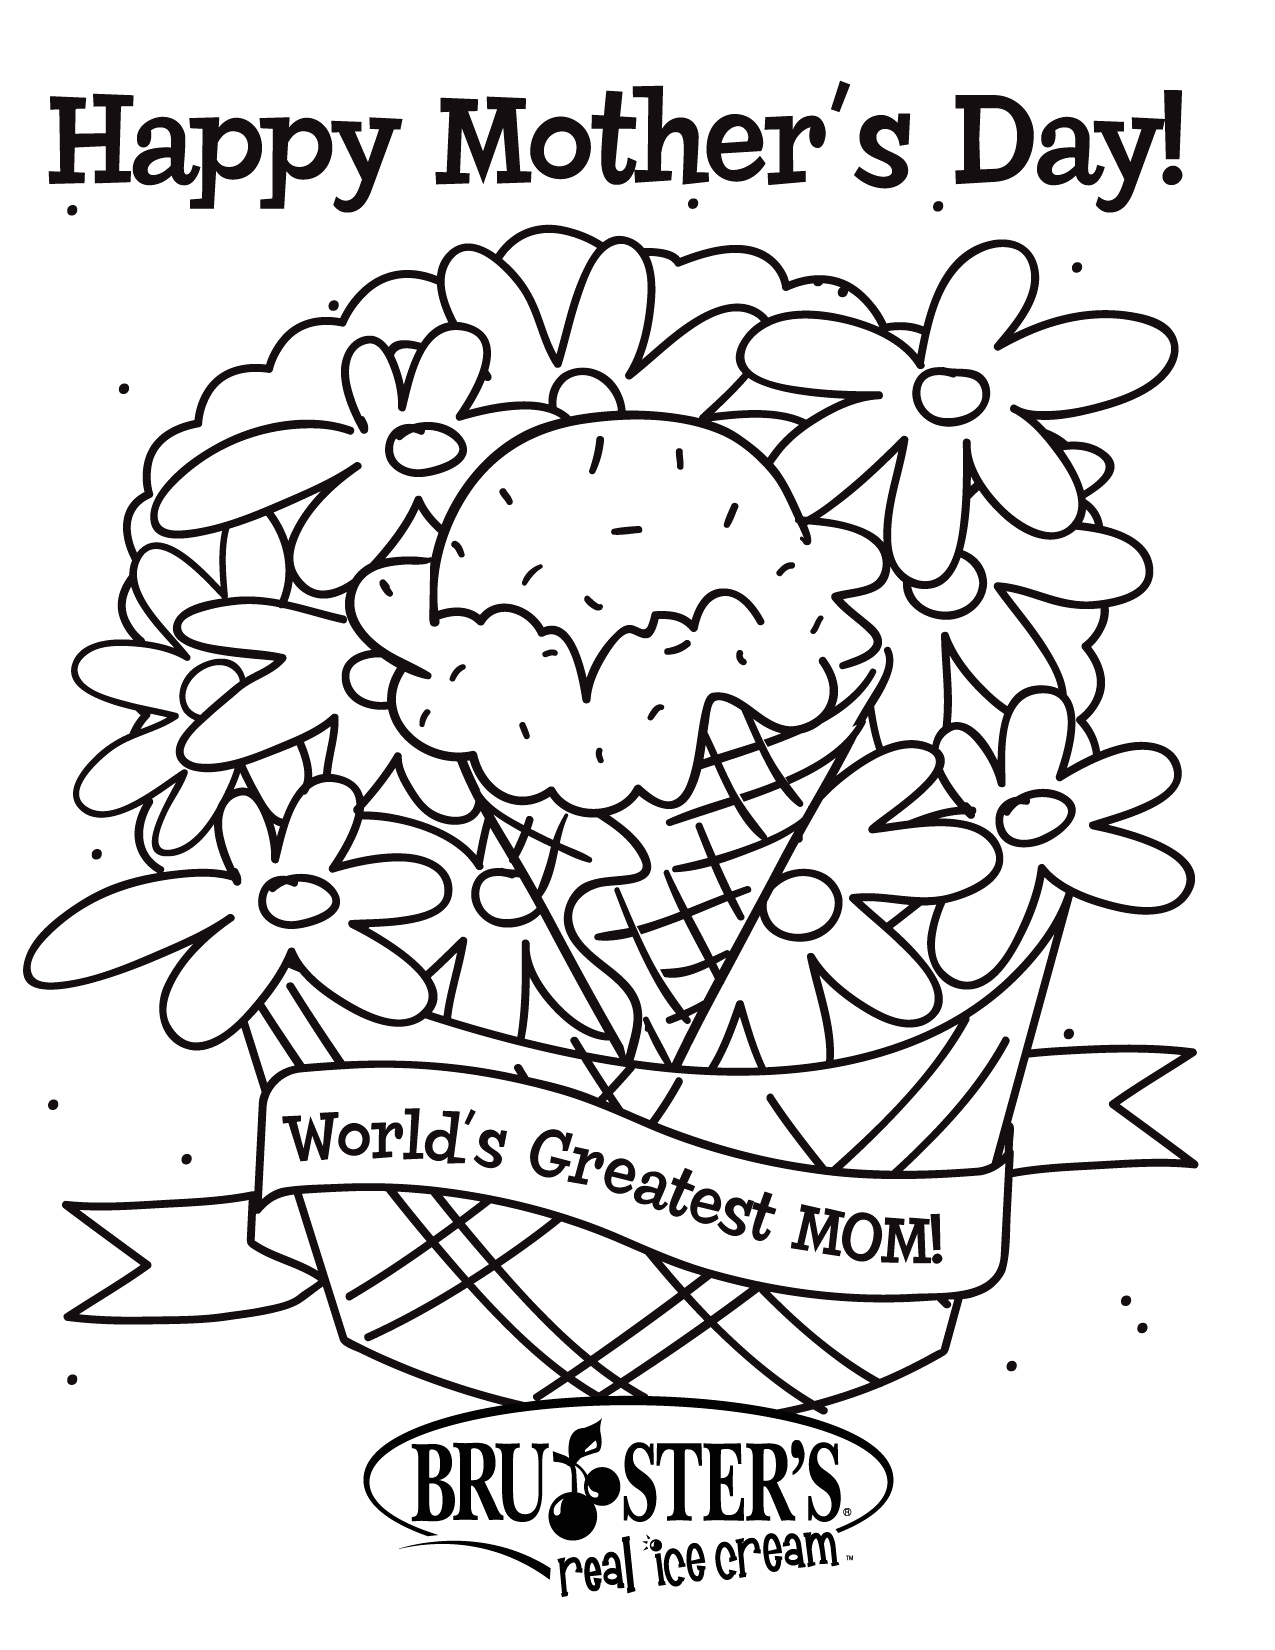 Free Mothers Day Coloring Pages for Kindergarten Free Printable Mothers Day Coloring Pages for Kids